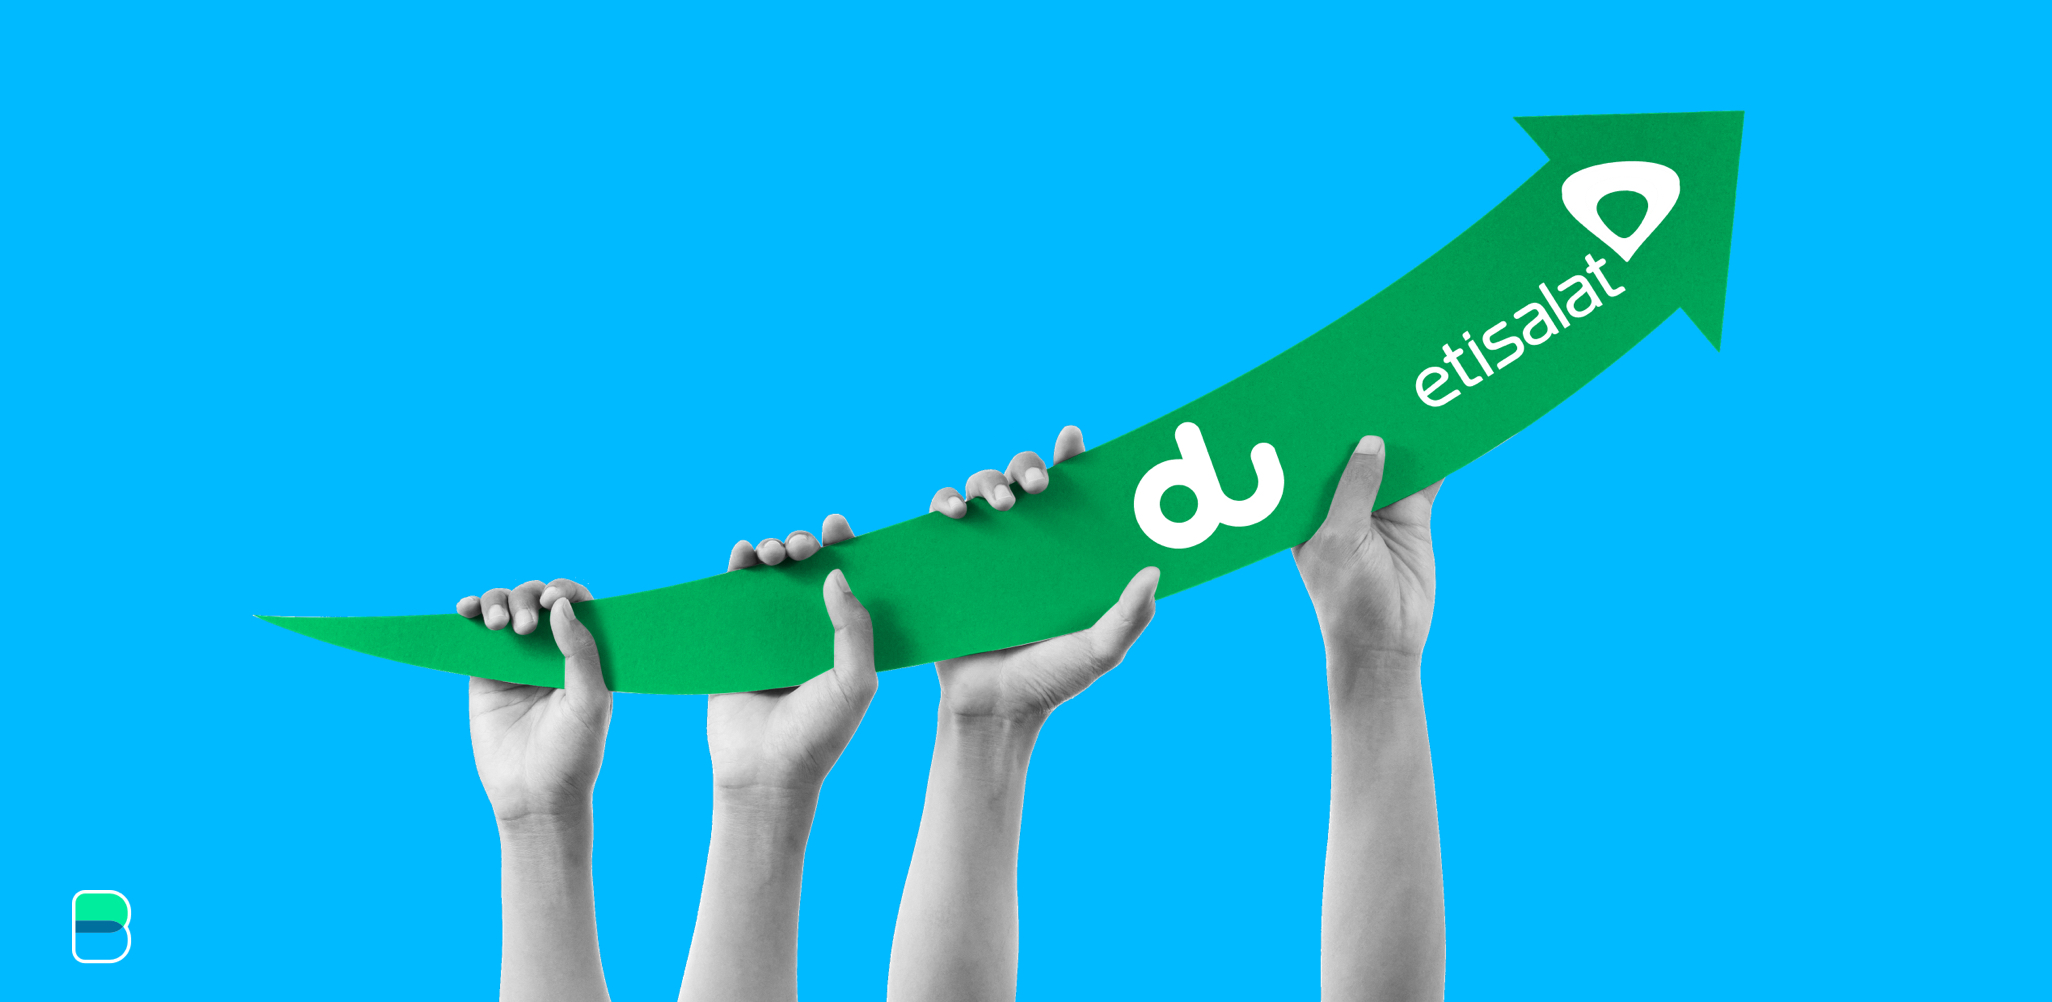 Etisalat and du to invite over more foreign owners